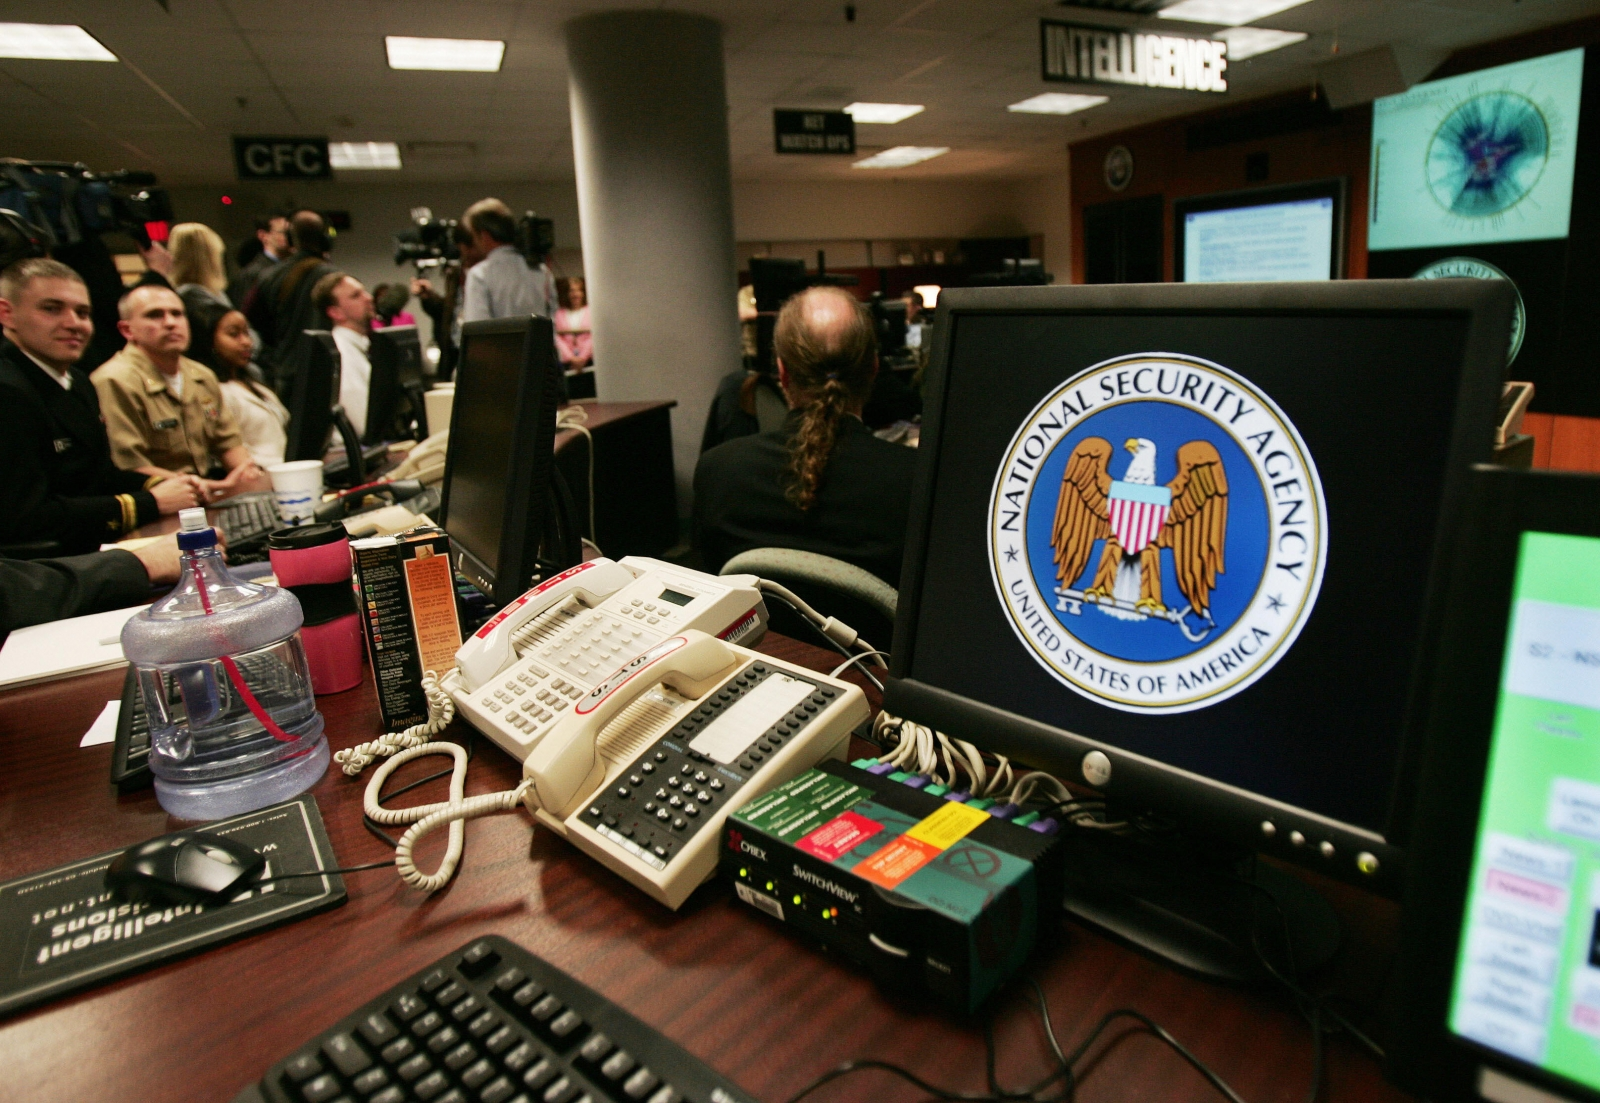 NSA workstation